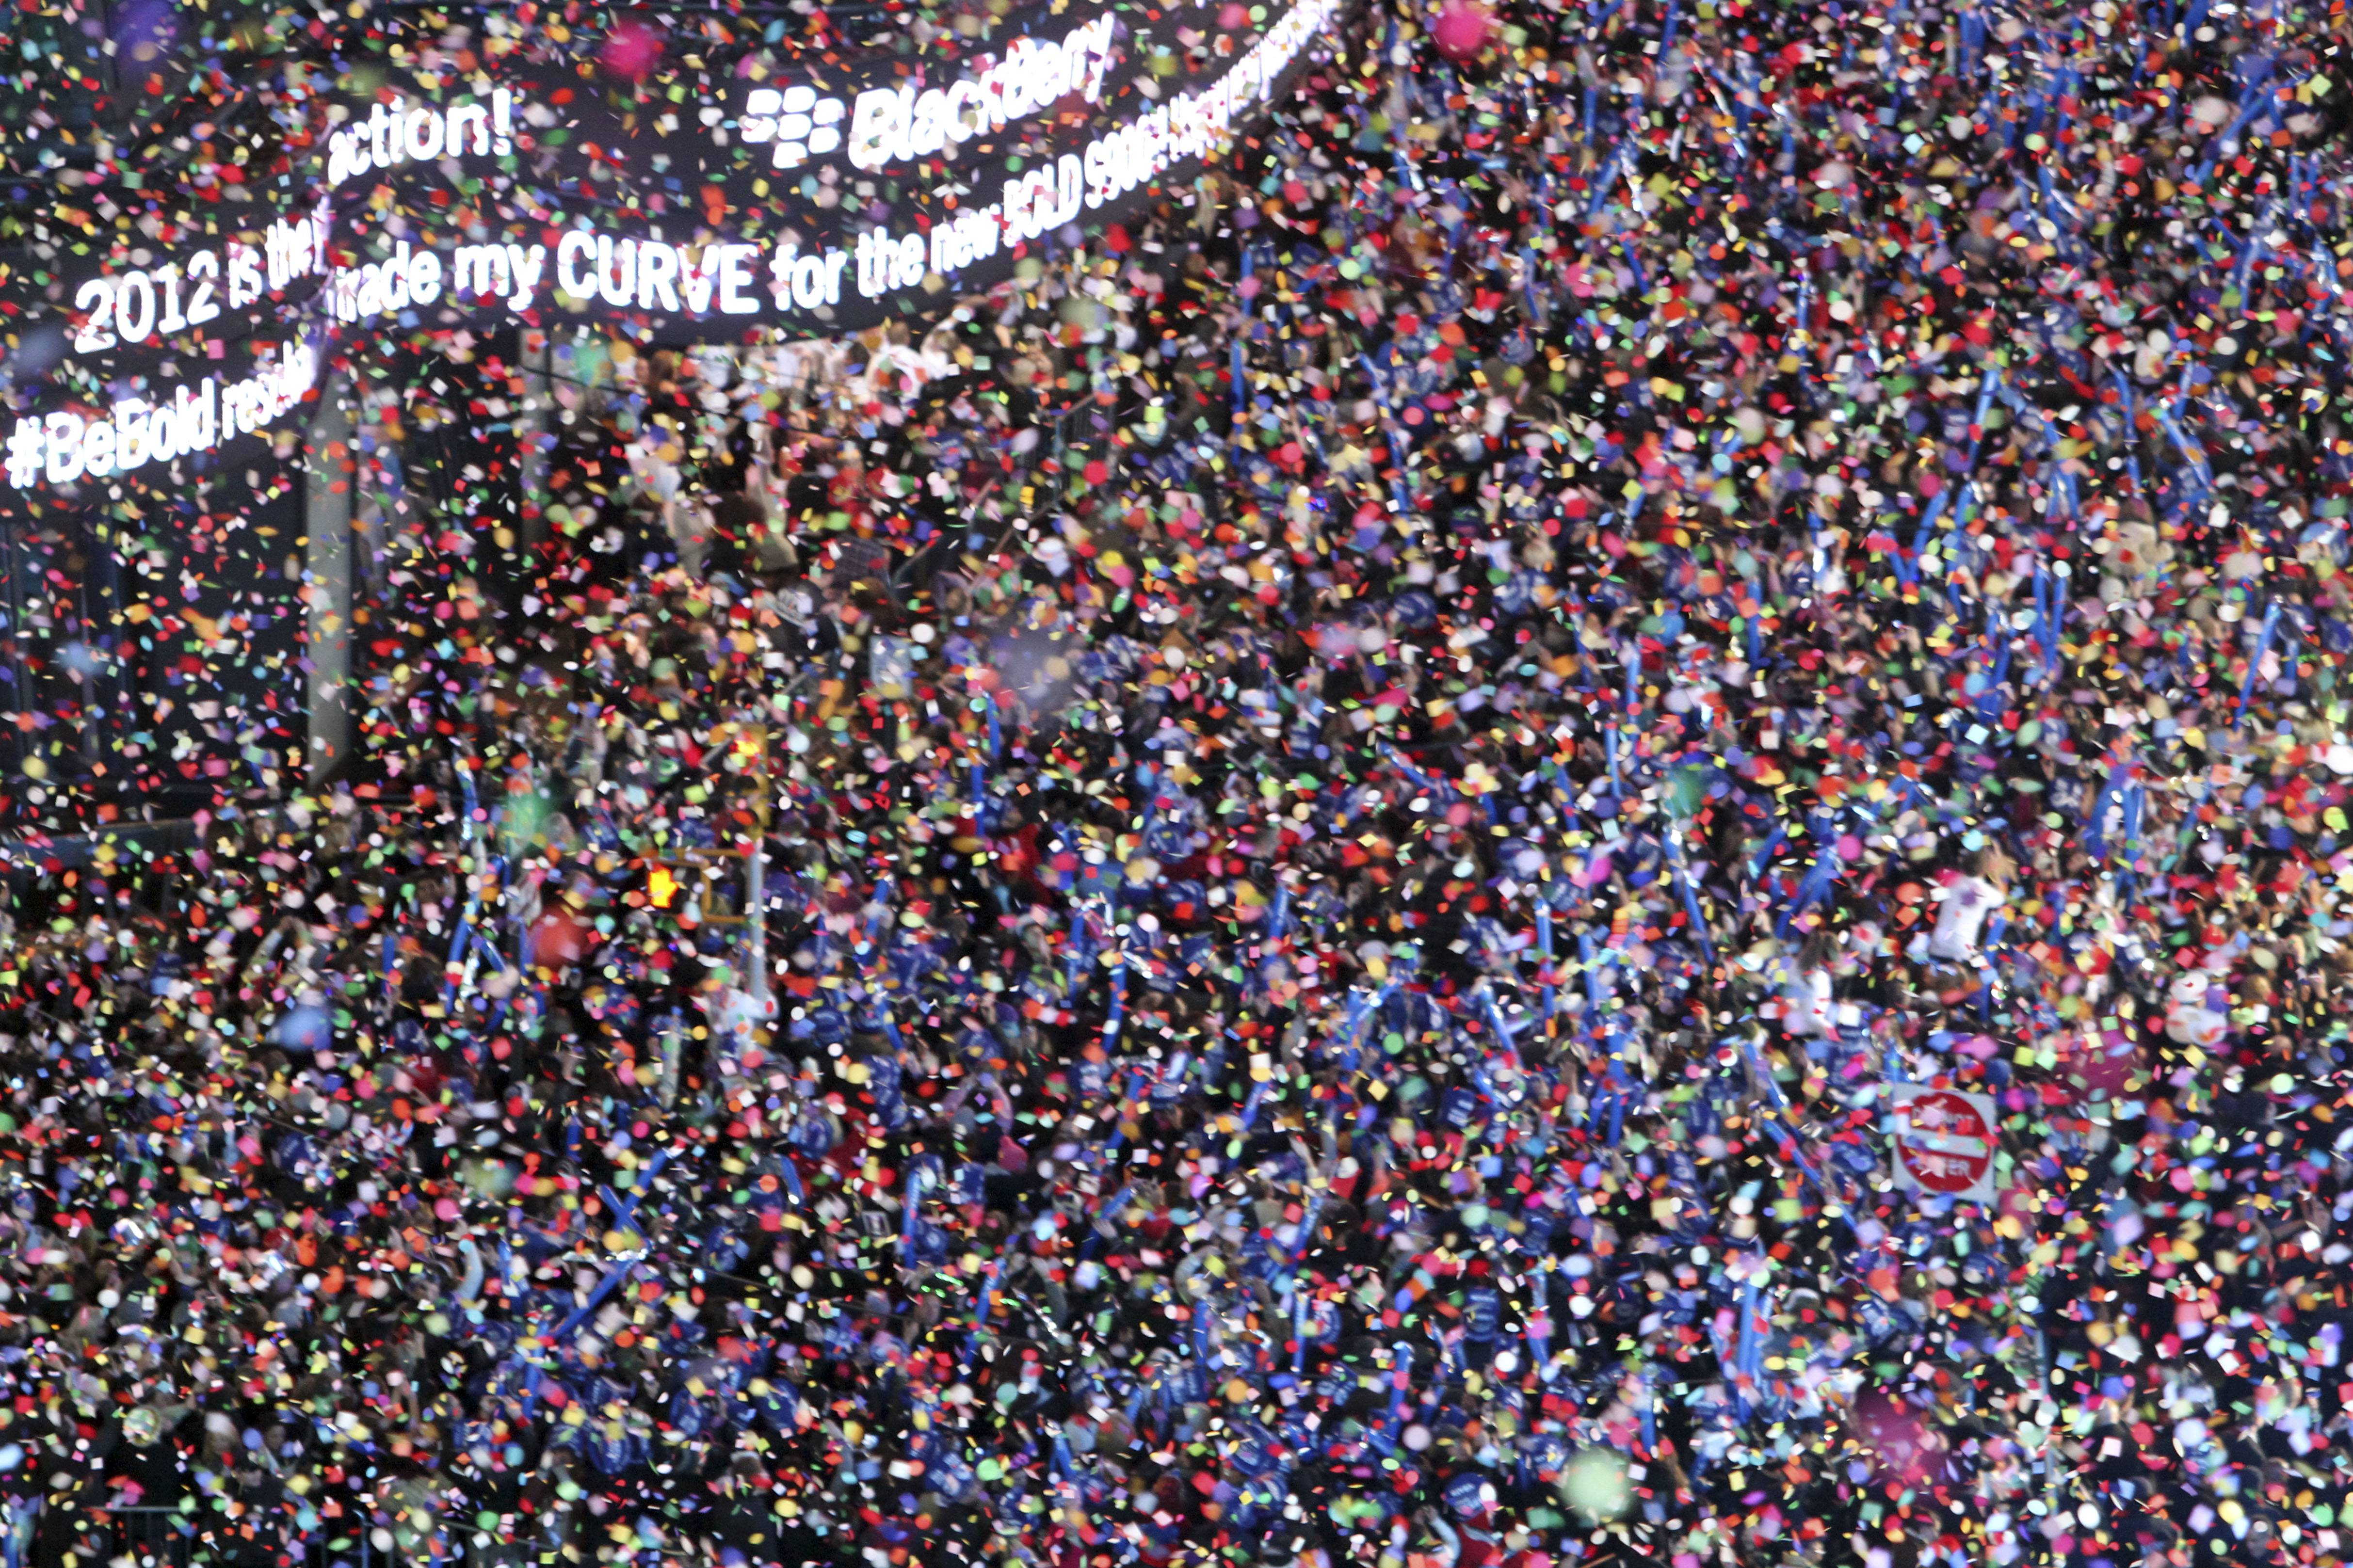 Confetti flies over New York's Times Square as the clock strikes midnight during the New Year's Eve celebration as seen from the balcony of the Marriott Marquis hotel.